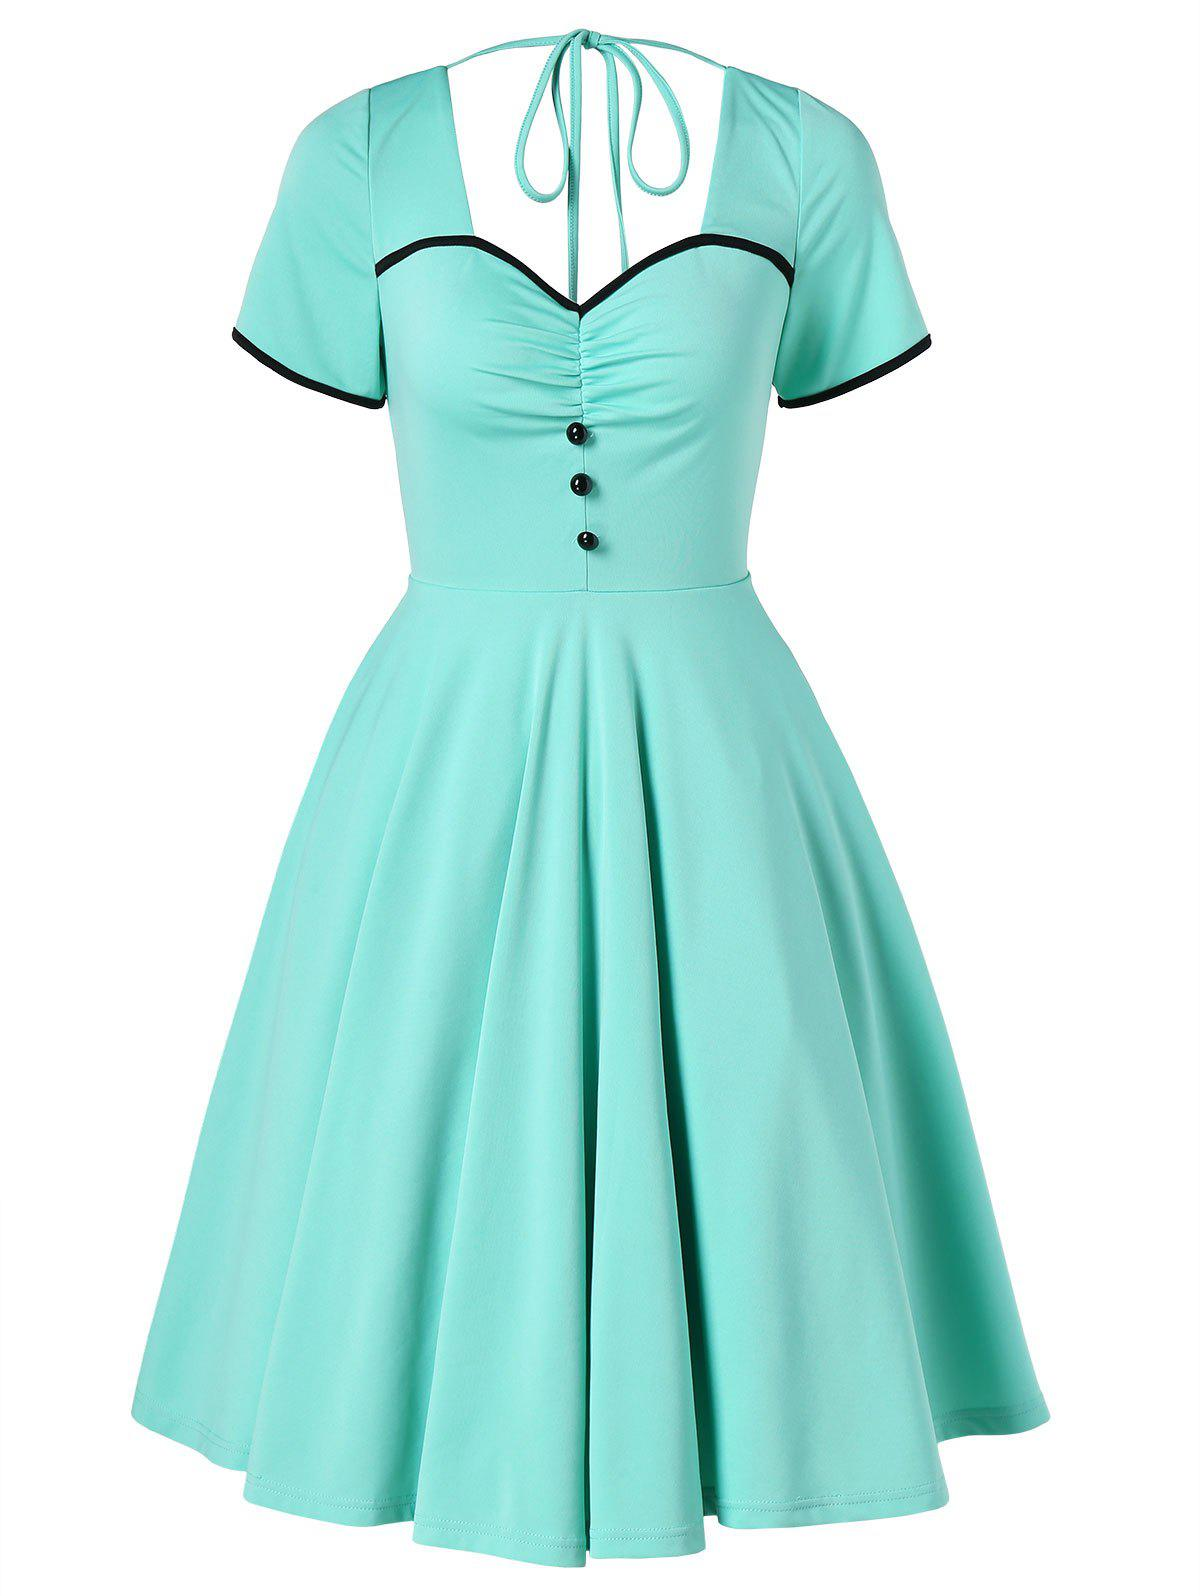 Fashion Vintage Buttons Open Back Skater Dress